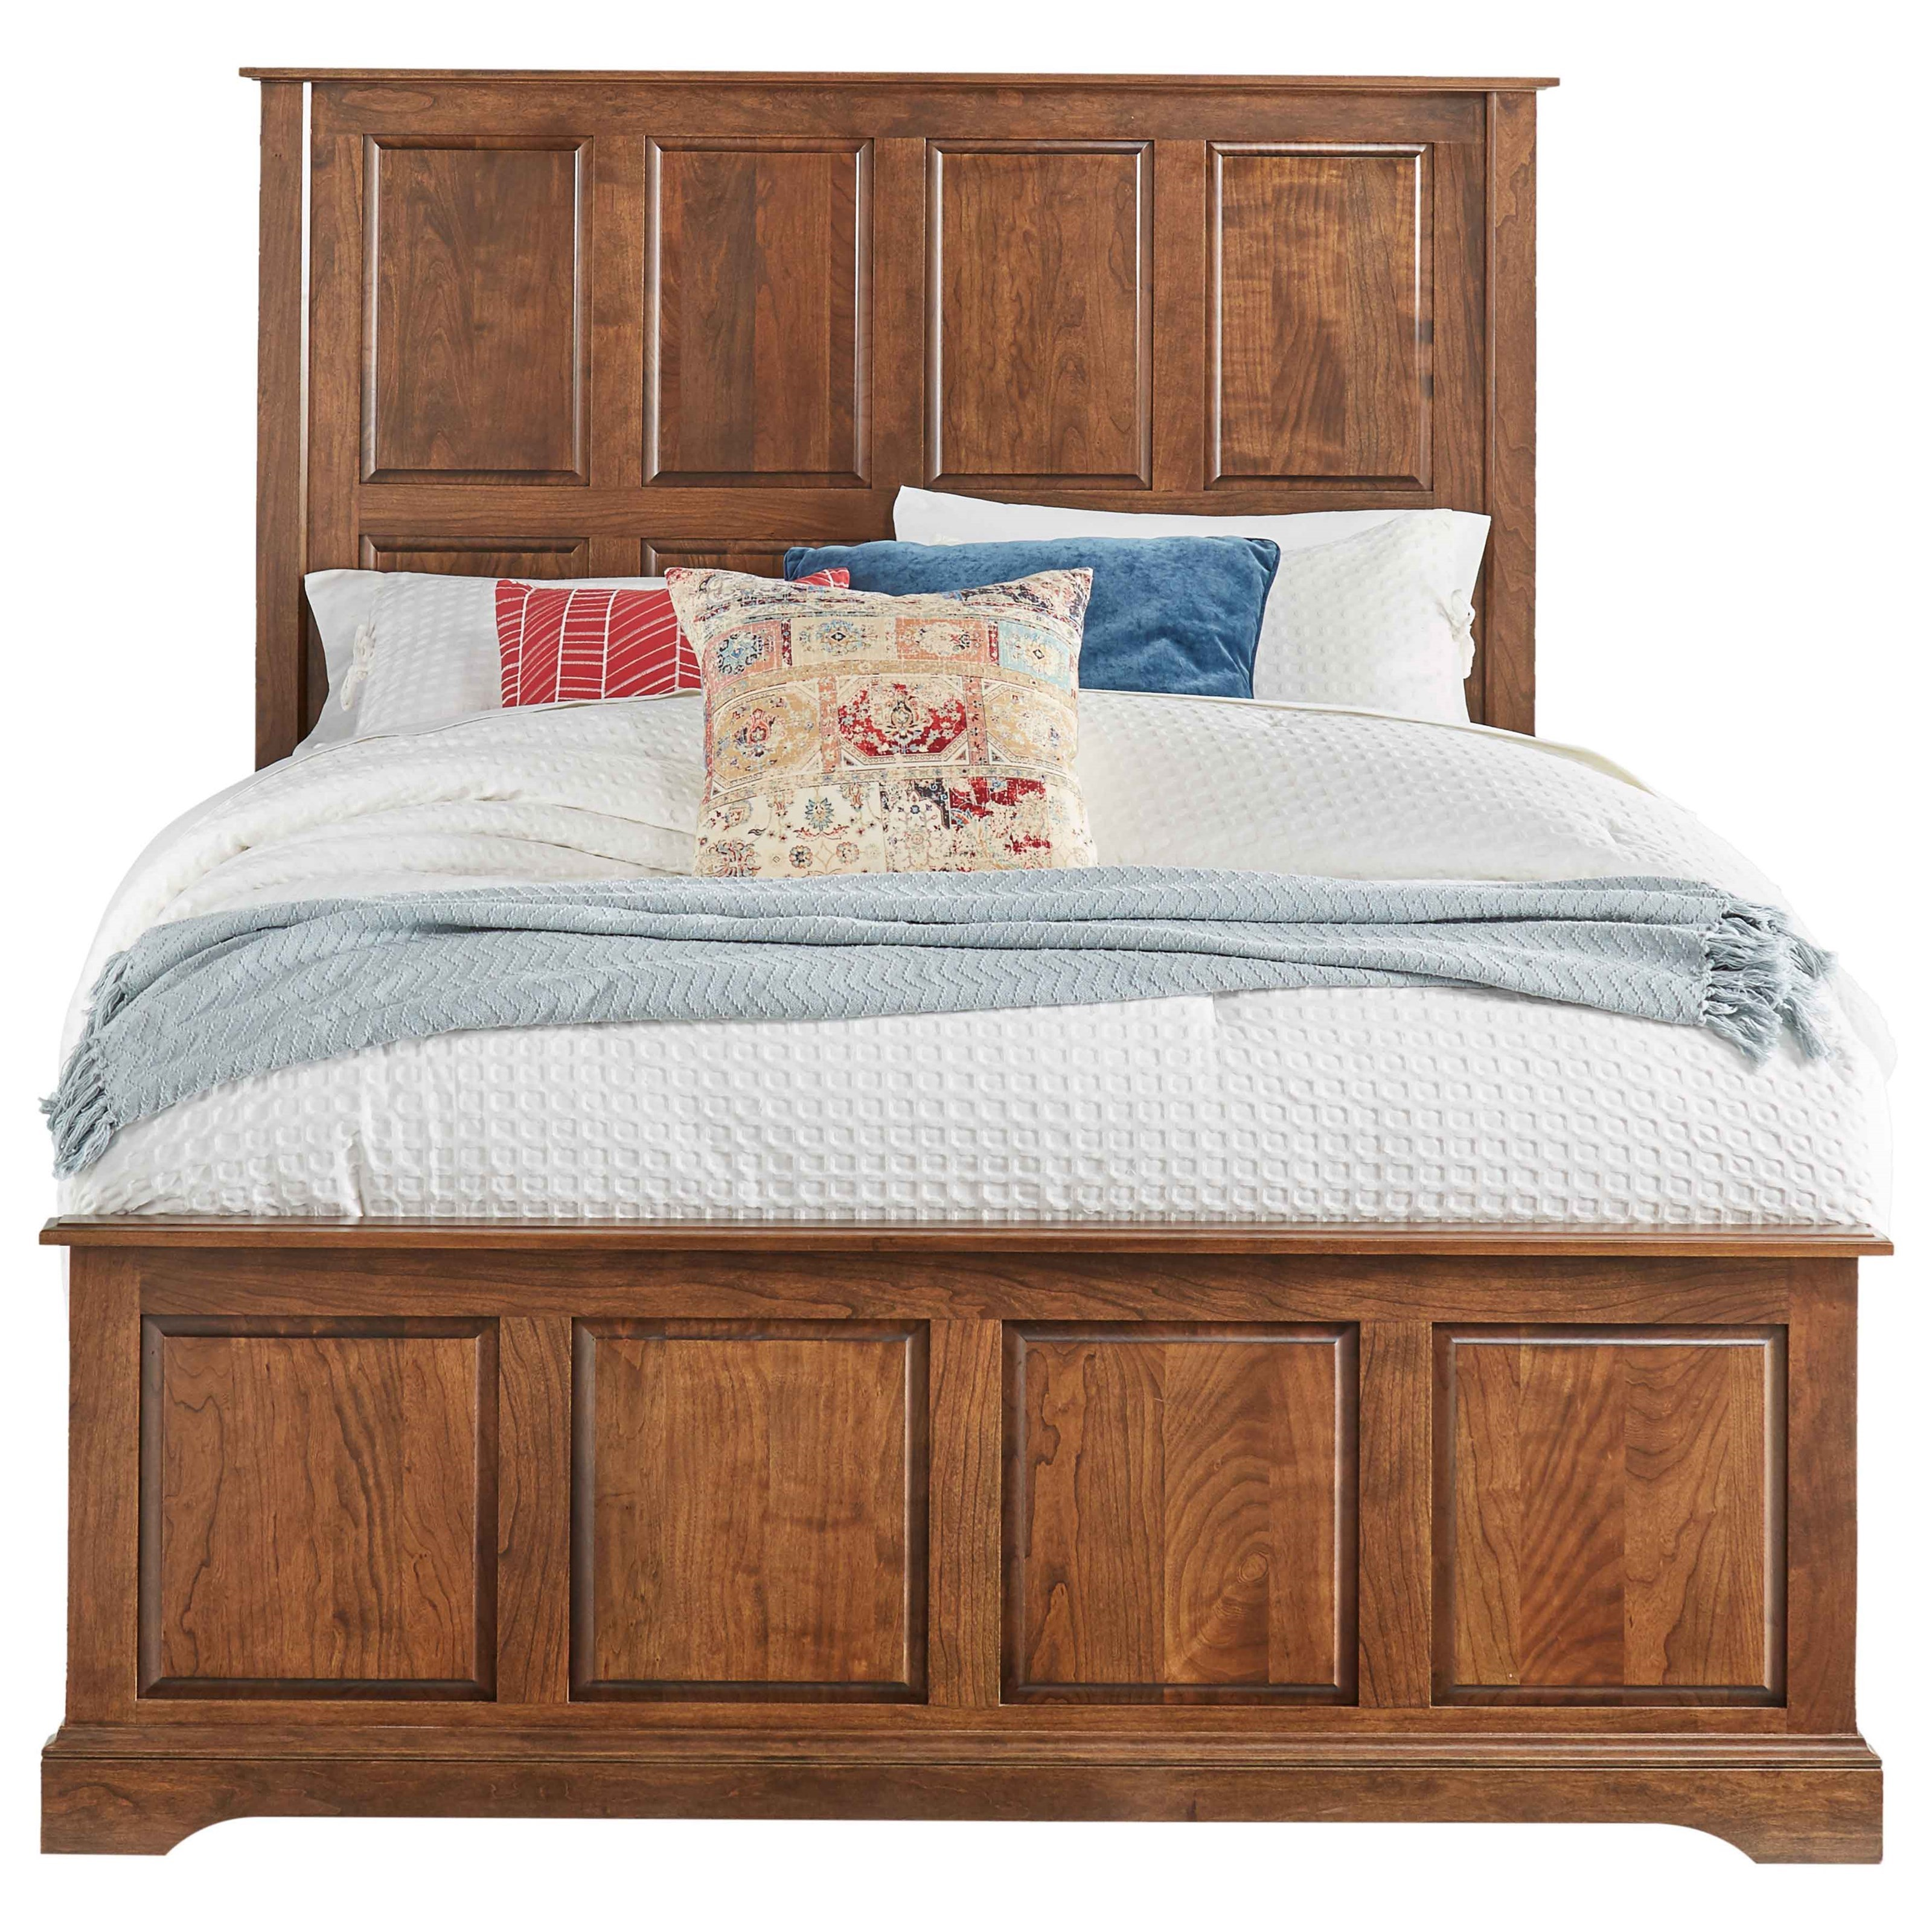 Carriage Queen-Size Bed by Daniel's Amish at Saugerties Furniture Mart